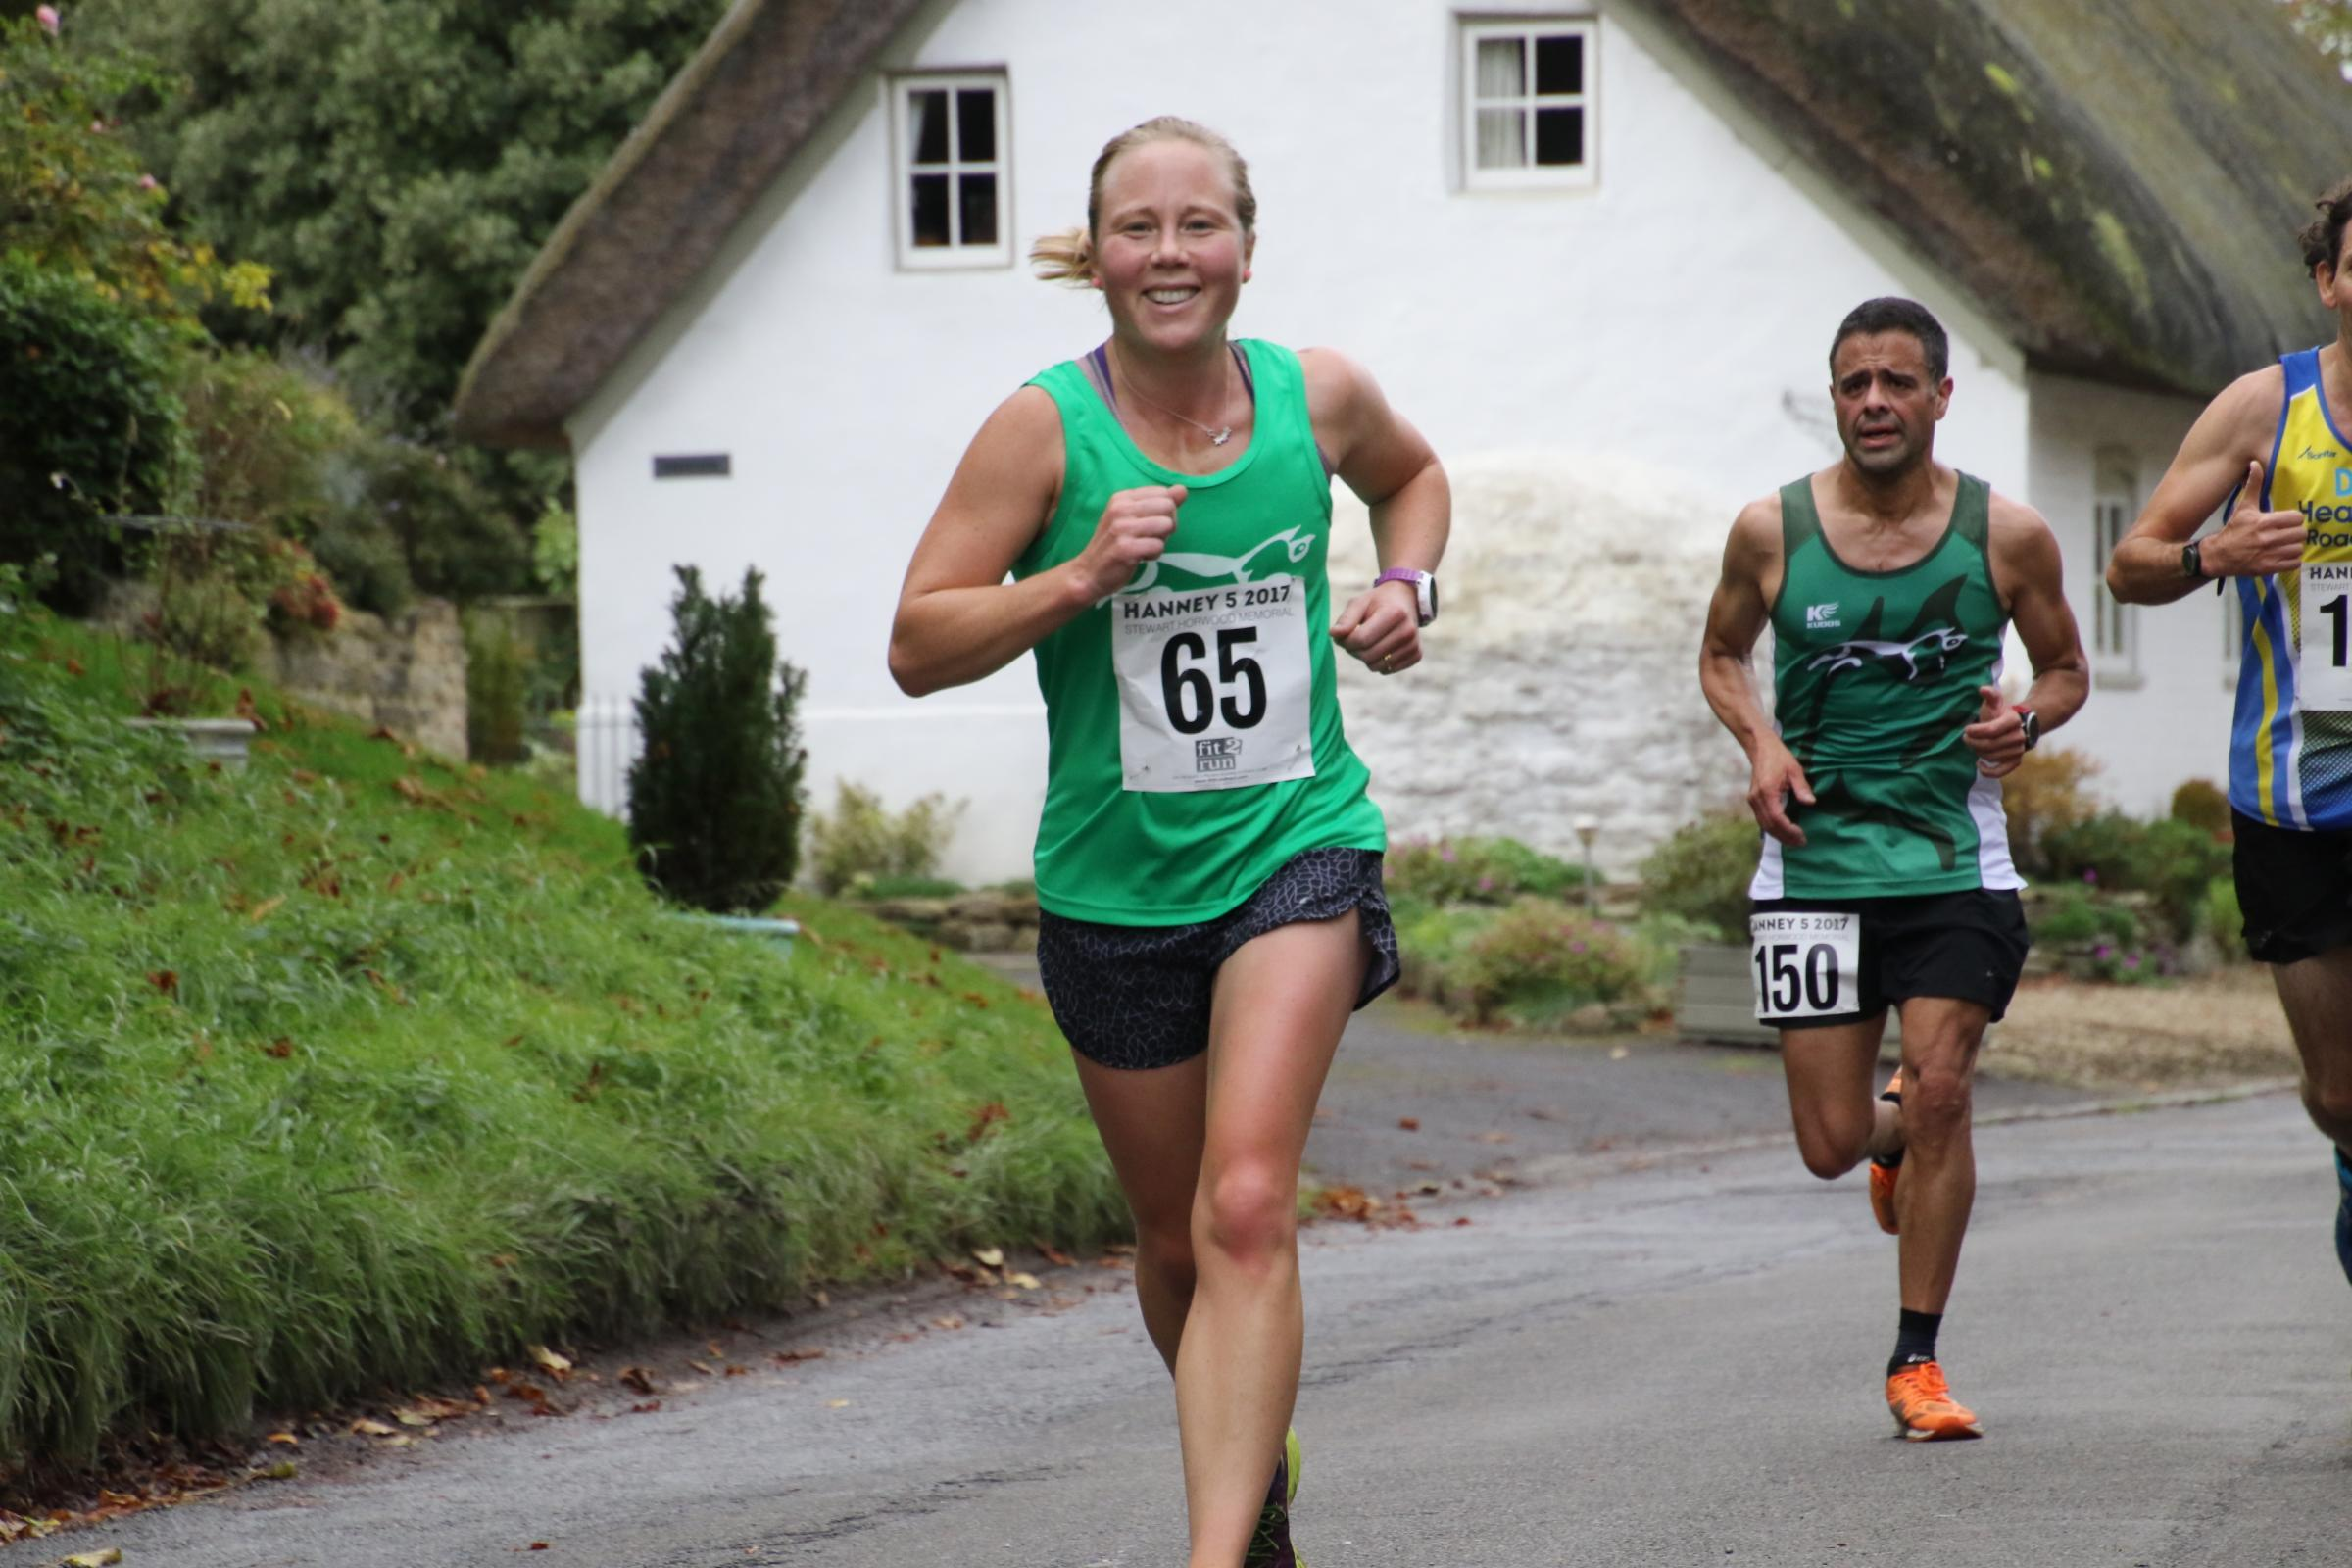 Clare Mowforth, of White Horse Harriers, is all smiles as she finishes as the top female at the Hanney 5 Picture: Barry Cornelius.